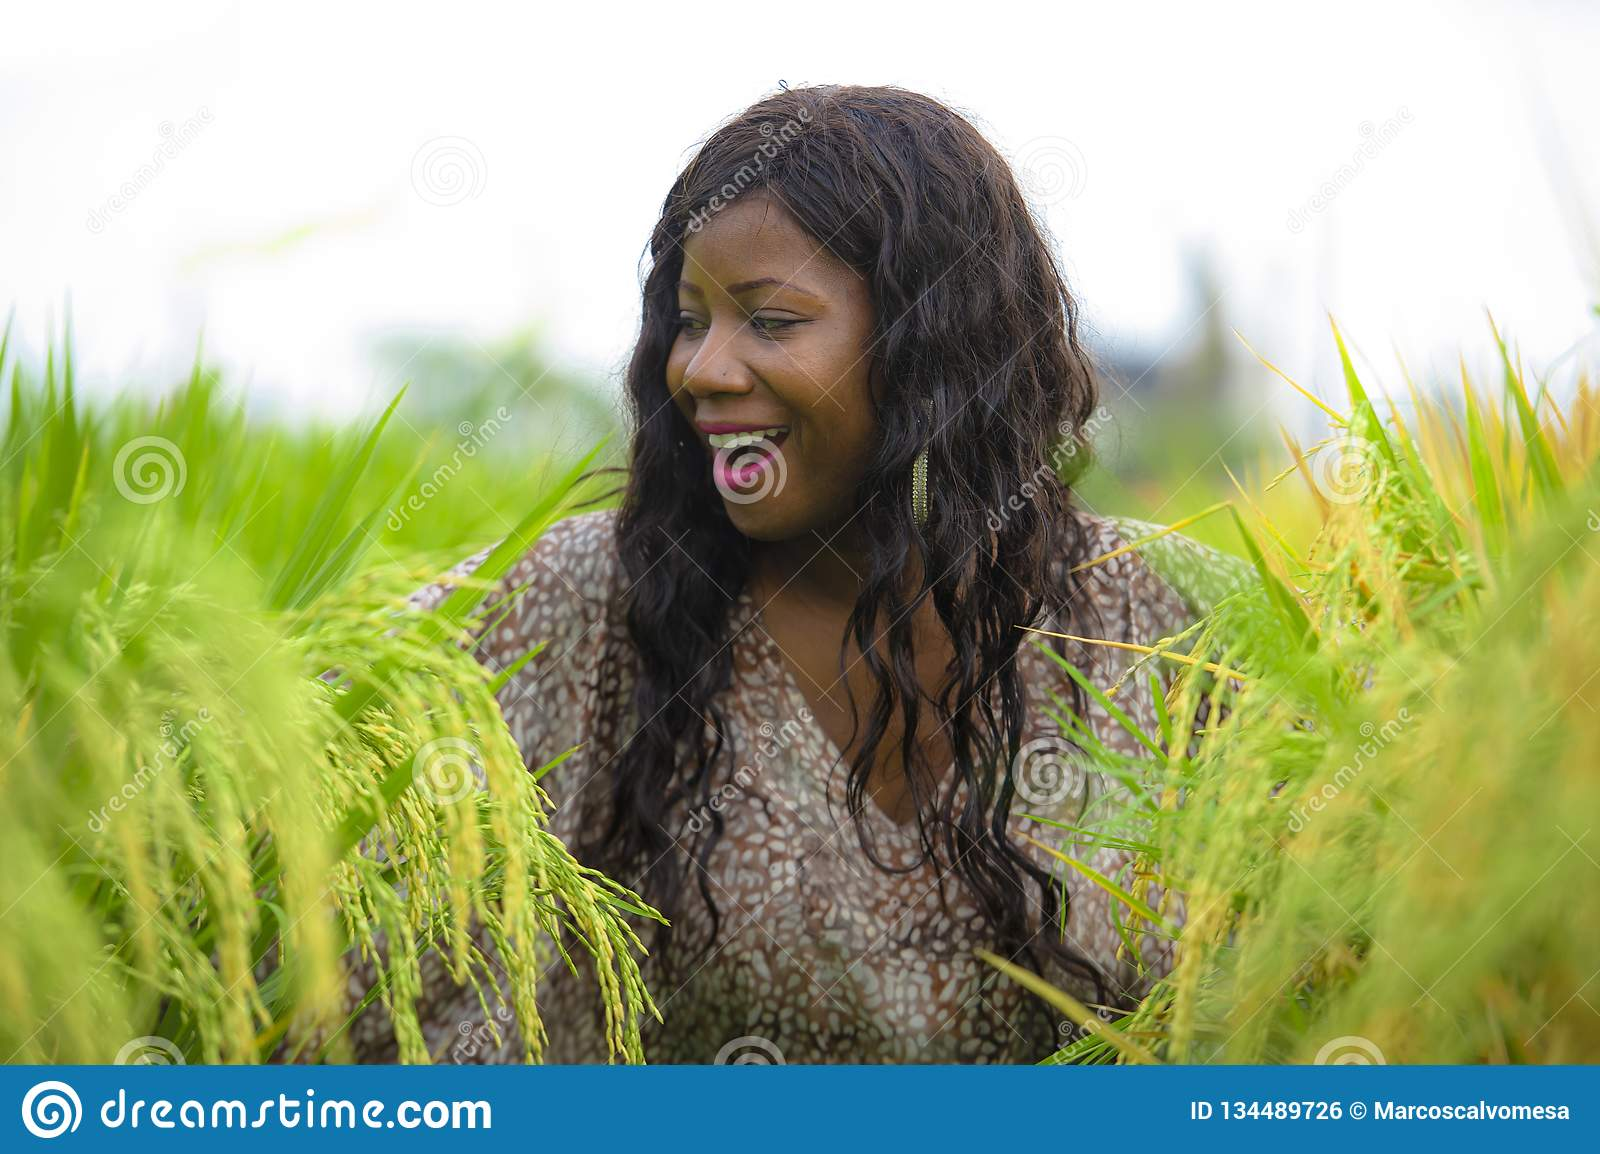 Outdoors fresh portrait of young beautiful and happy black afro American woman in cool dress having fun at tropical rice field